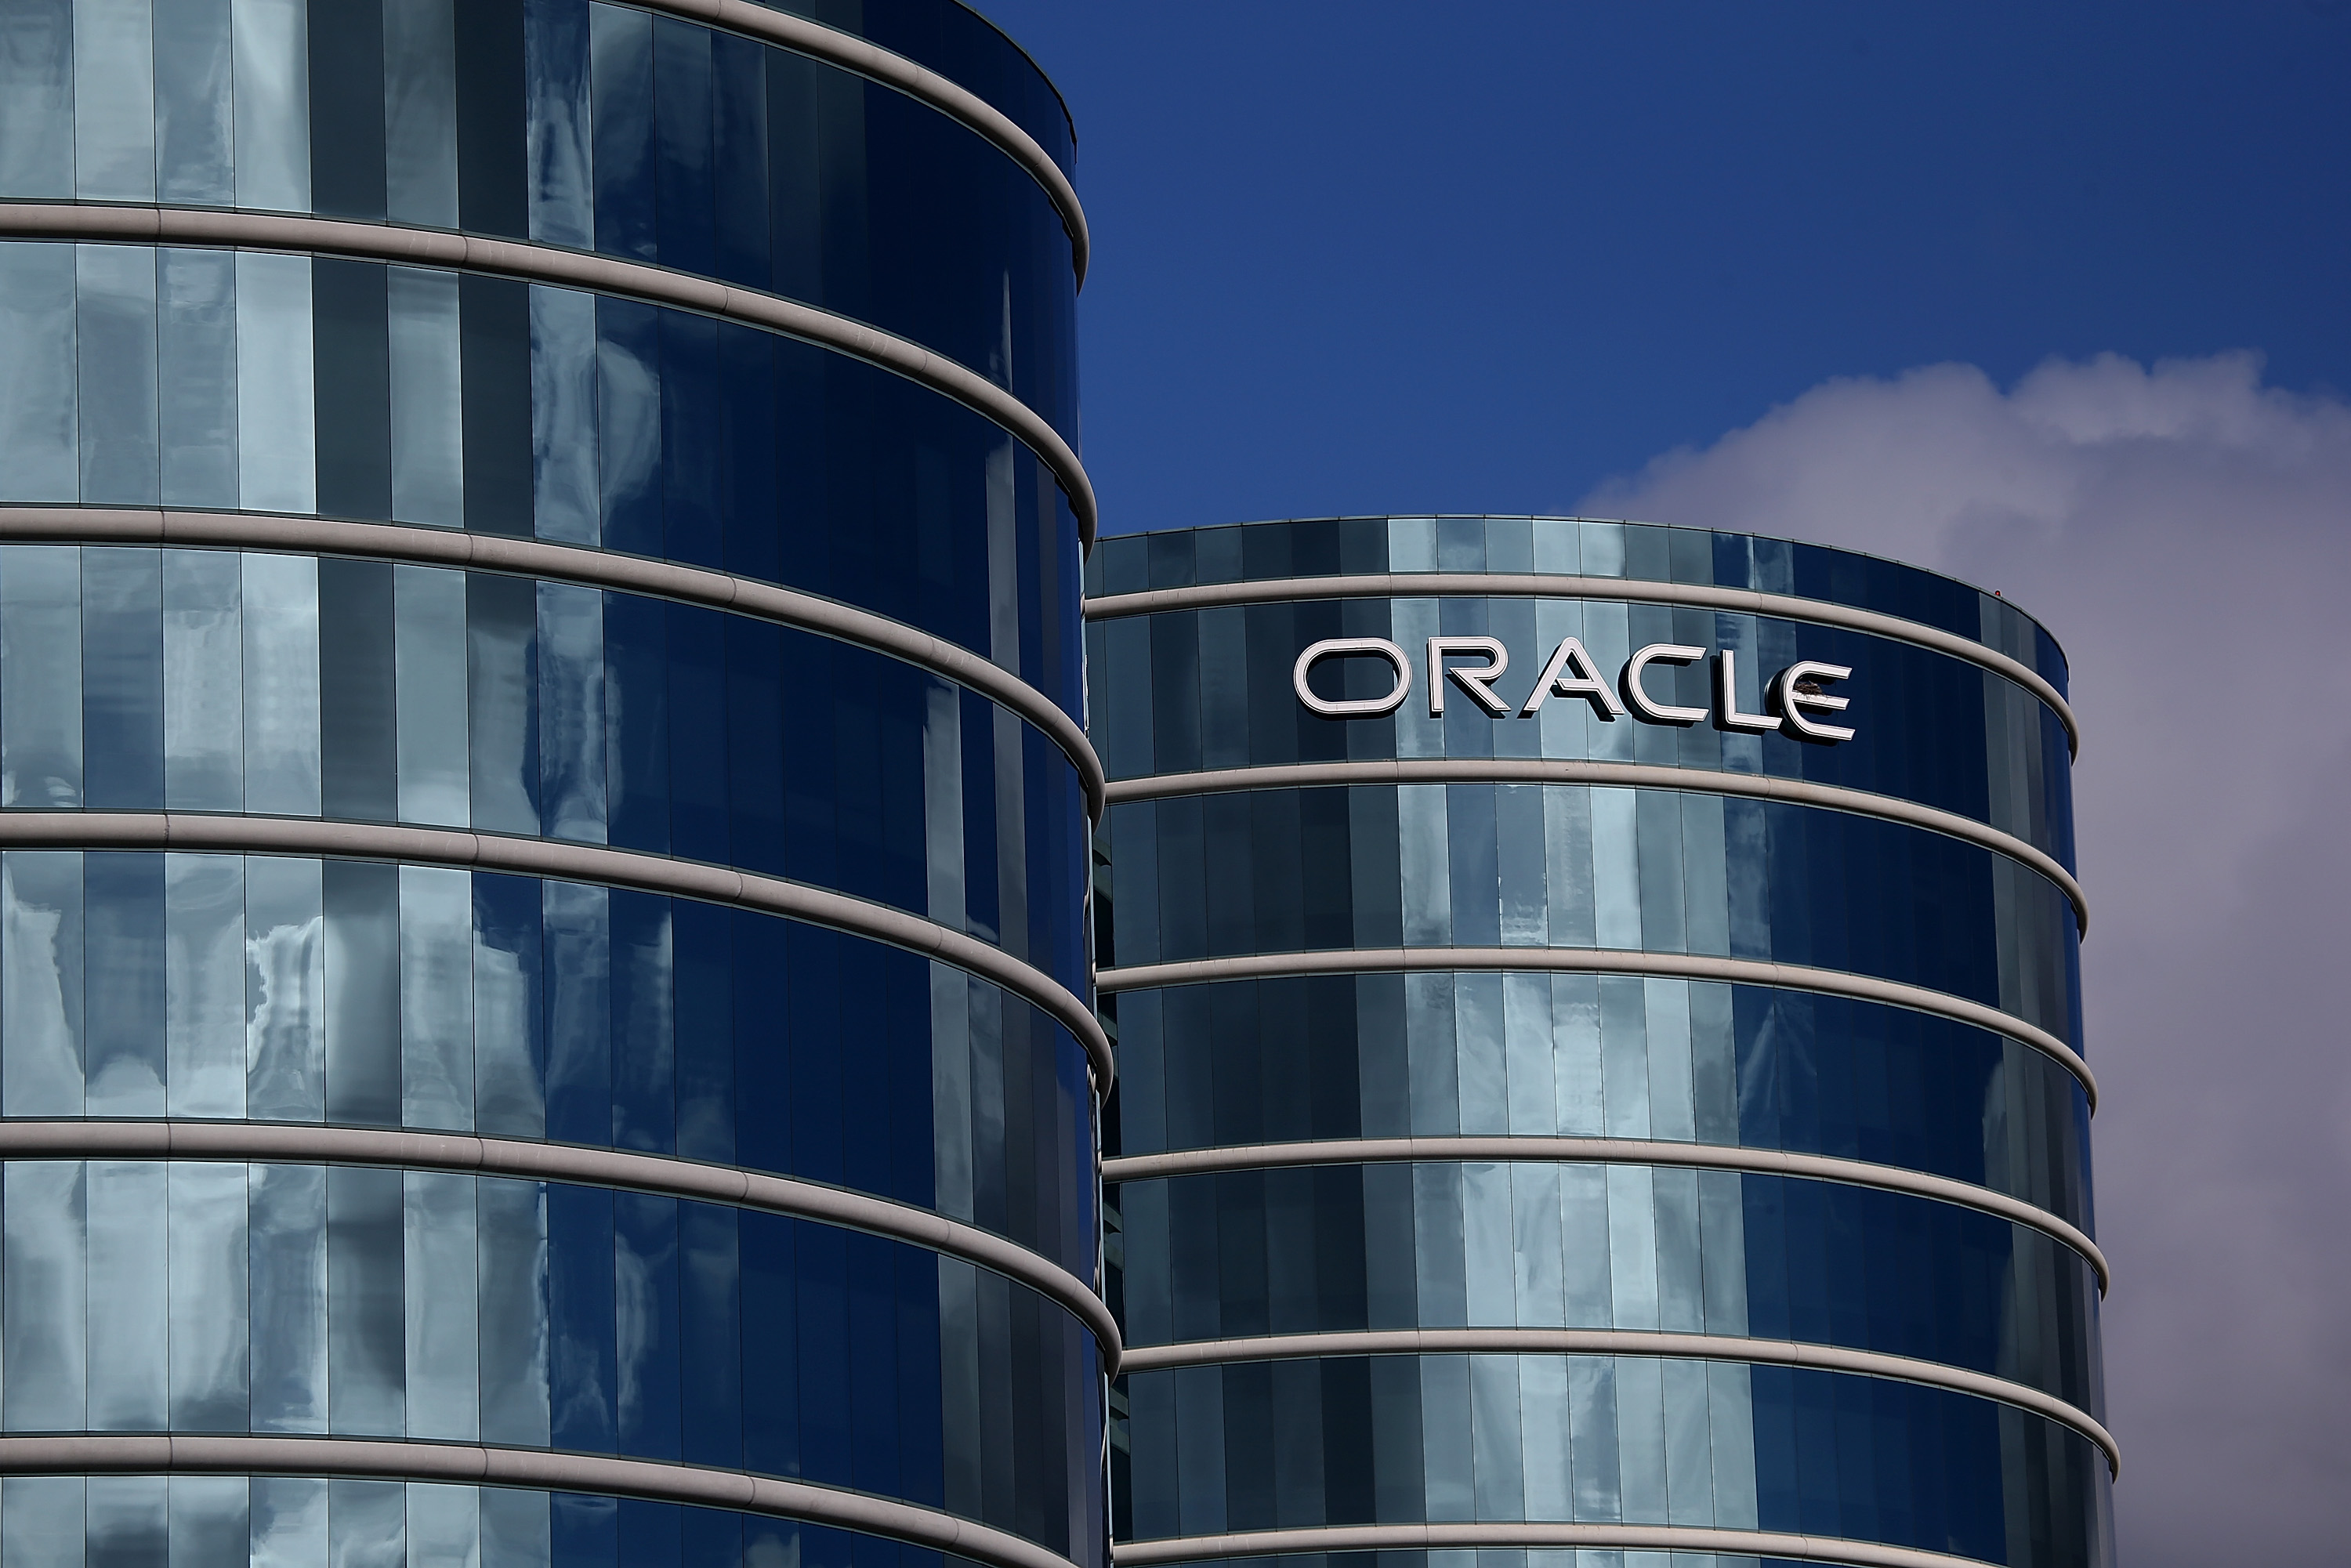 The Oracle building